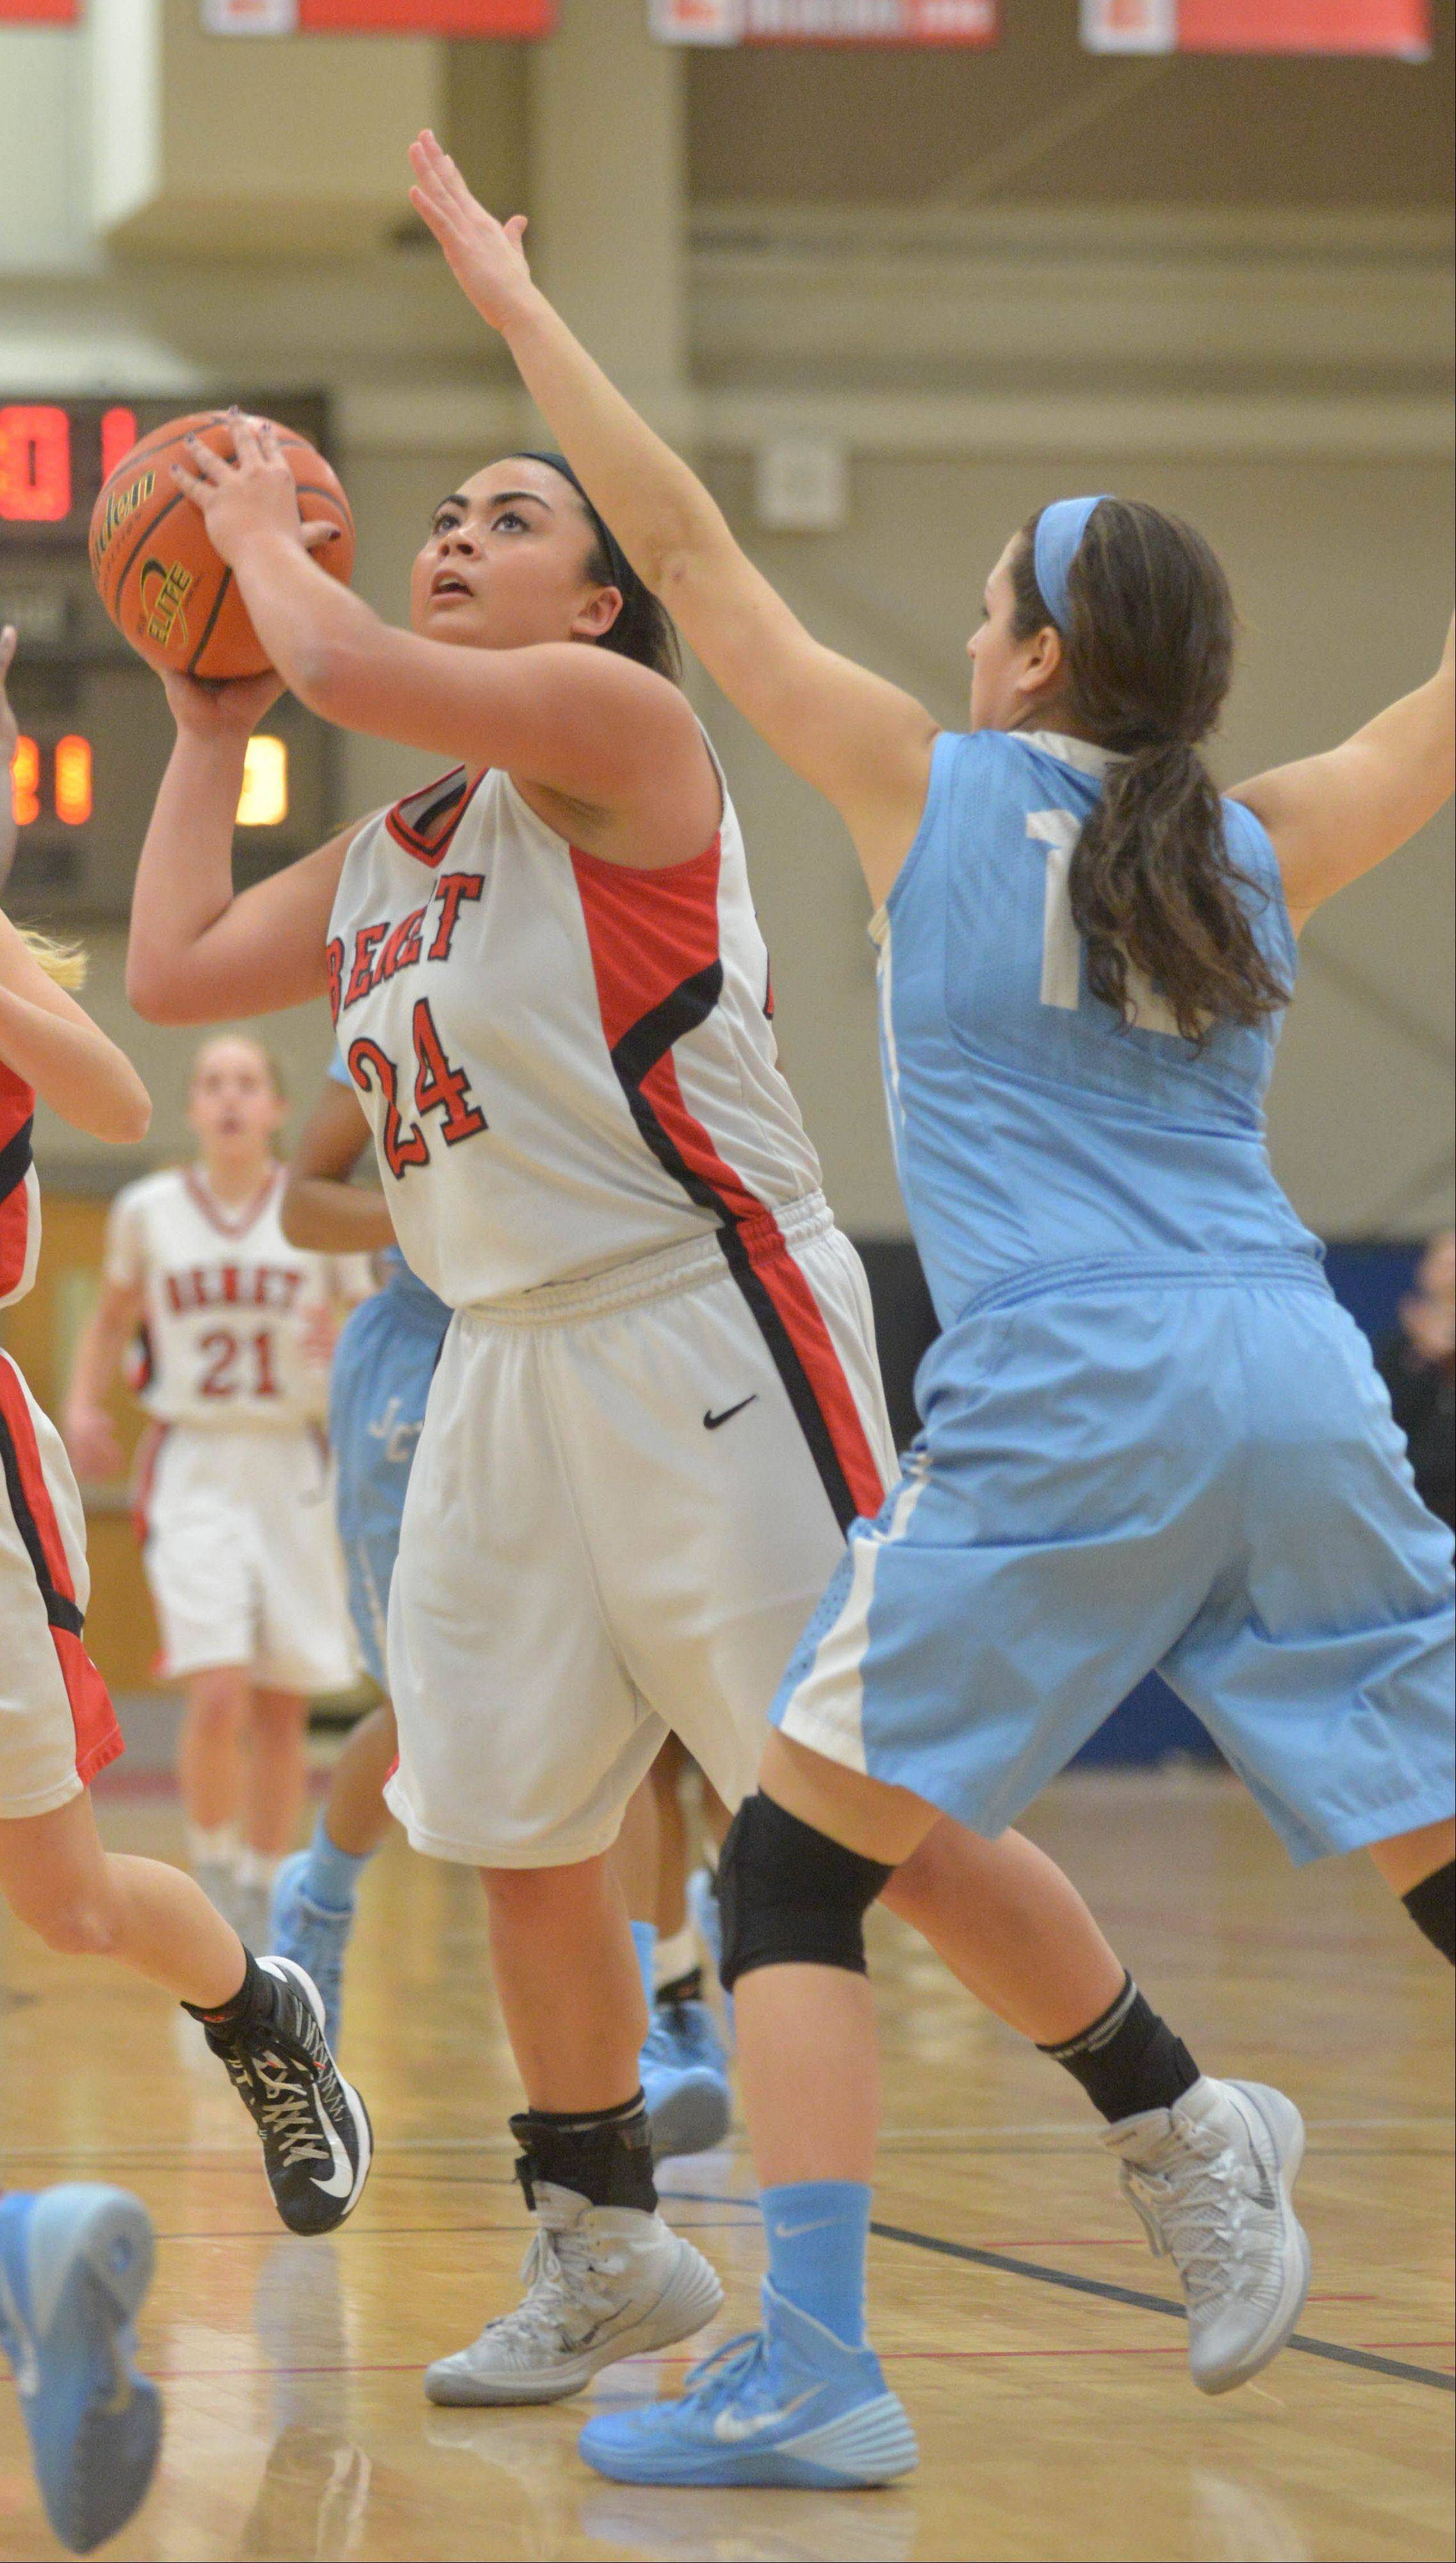 Eden Olson of Benet looks to take a shot during the Joliet Catholic at Benet girls basketball game Wedsday.